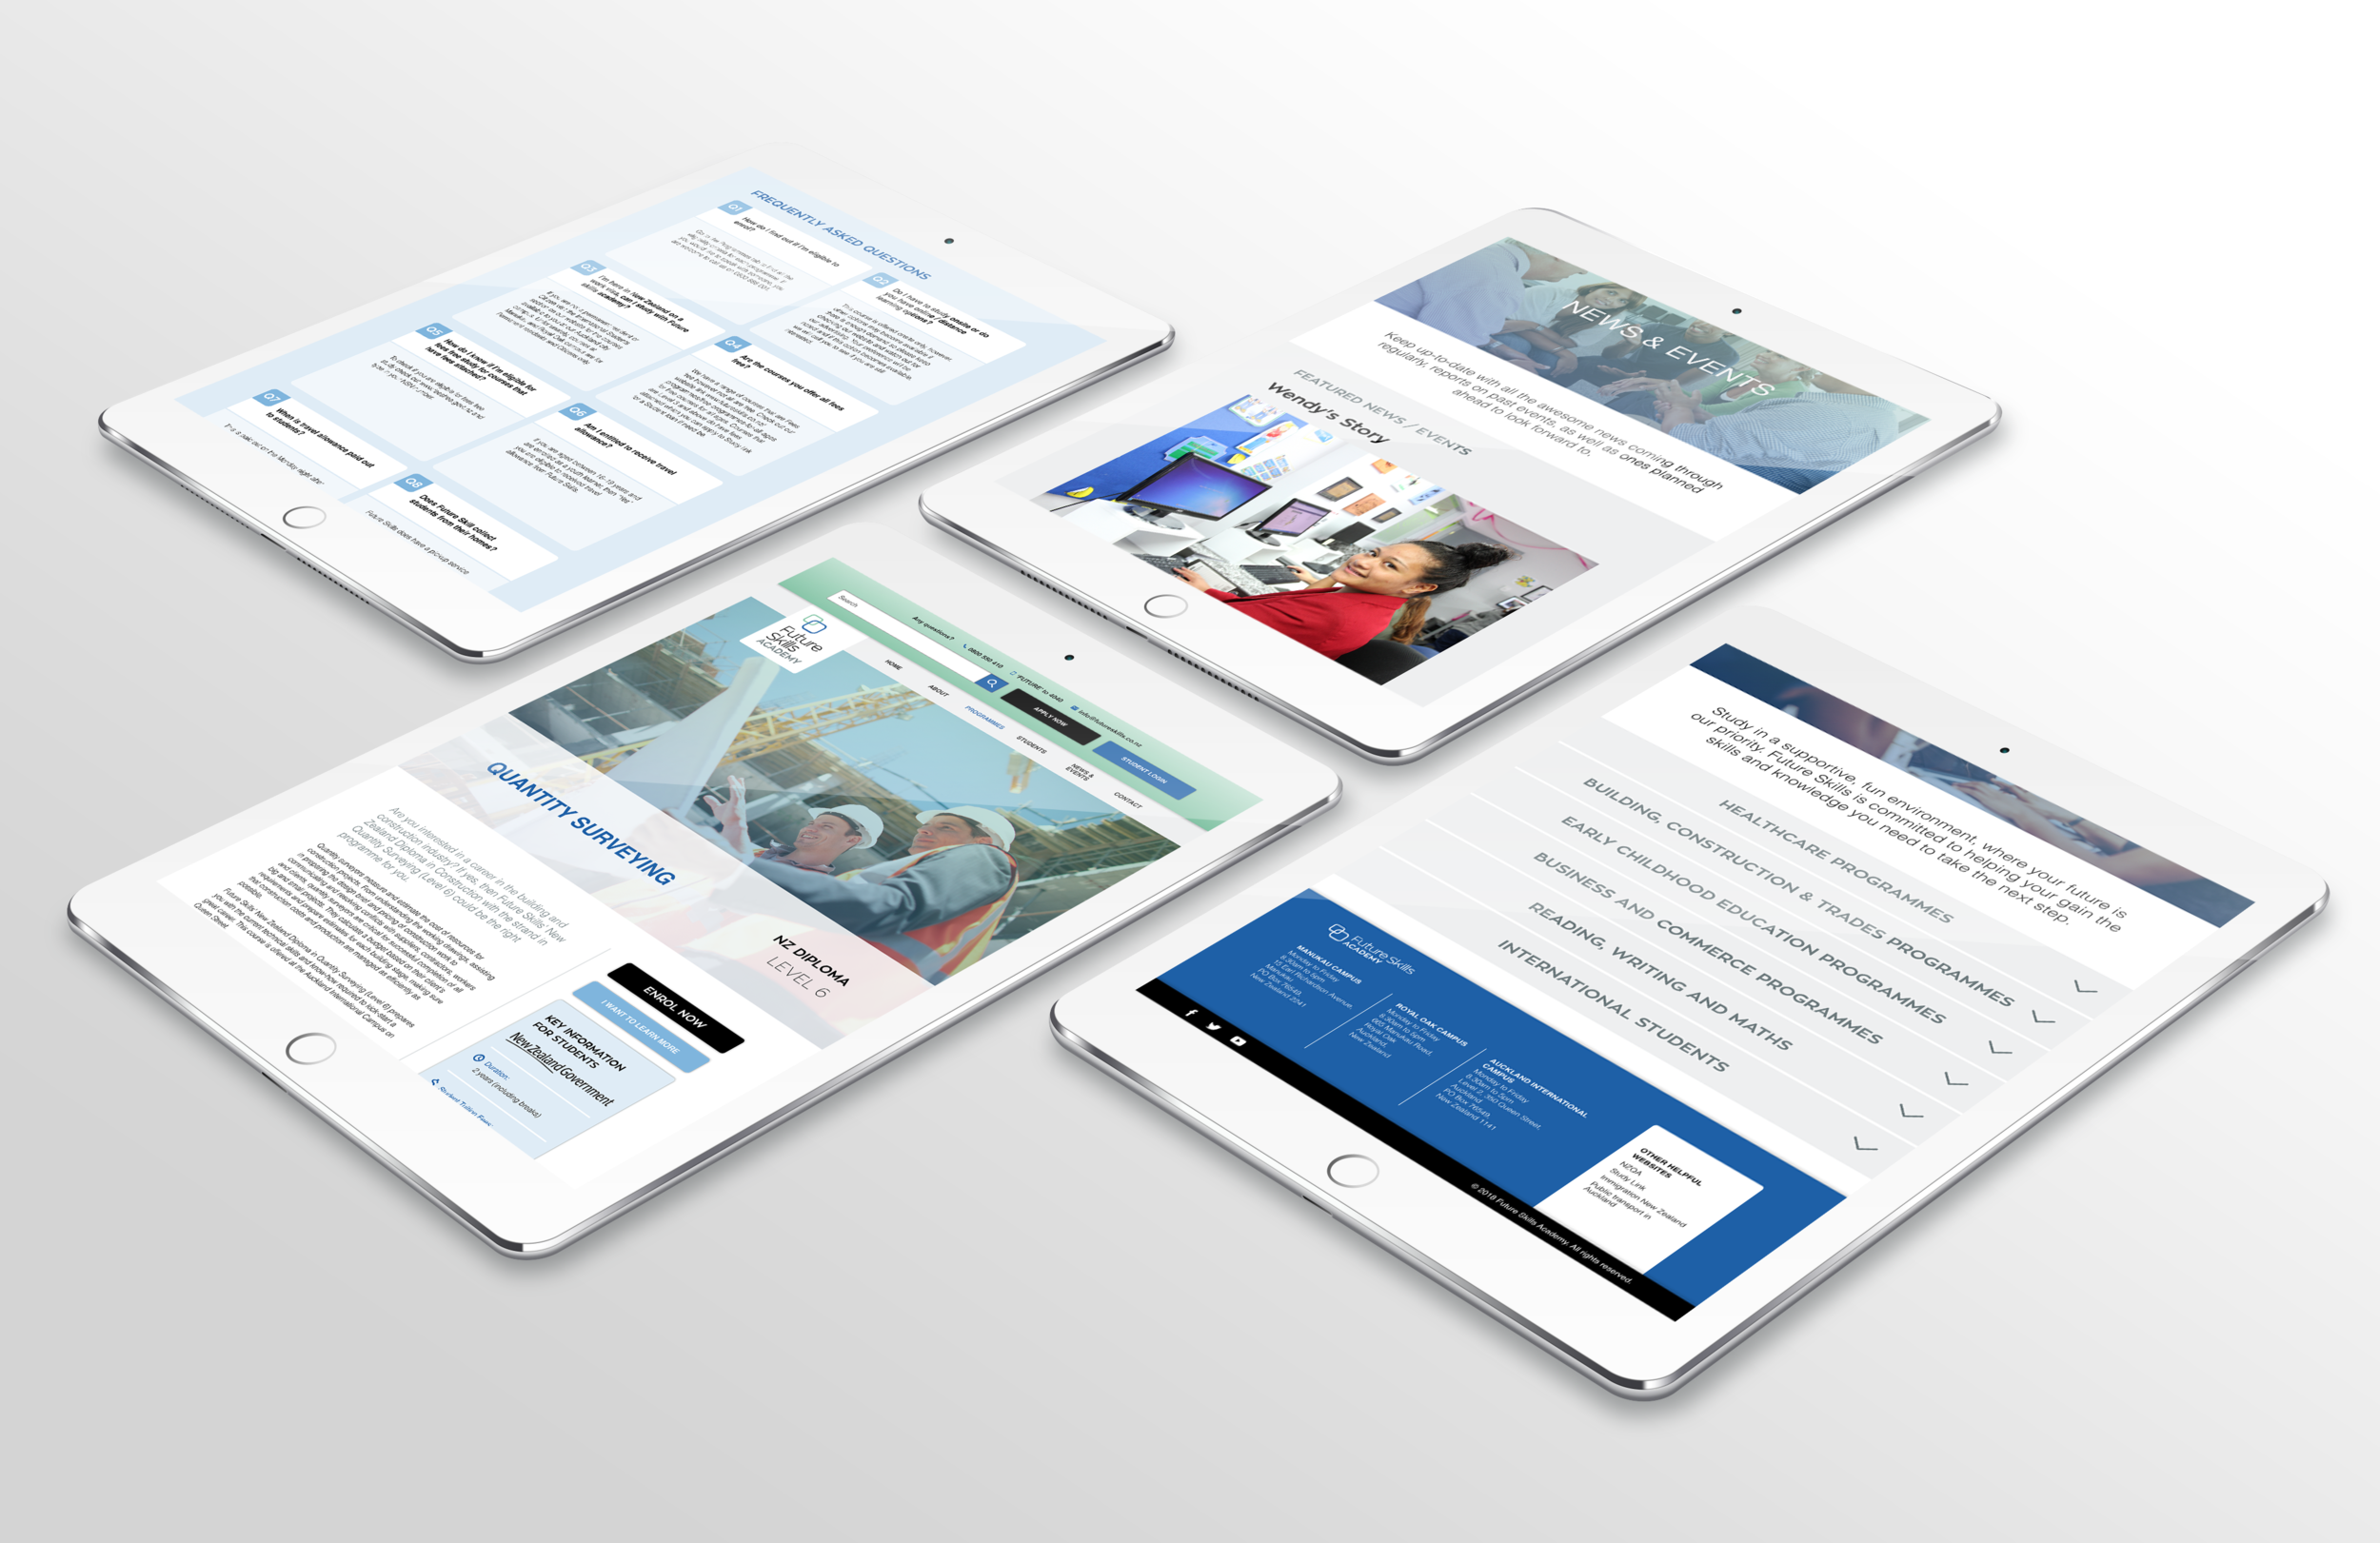 Four iPads display different layouts/pages of a website